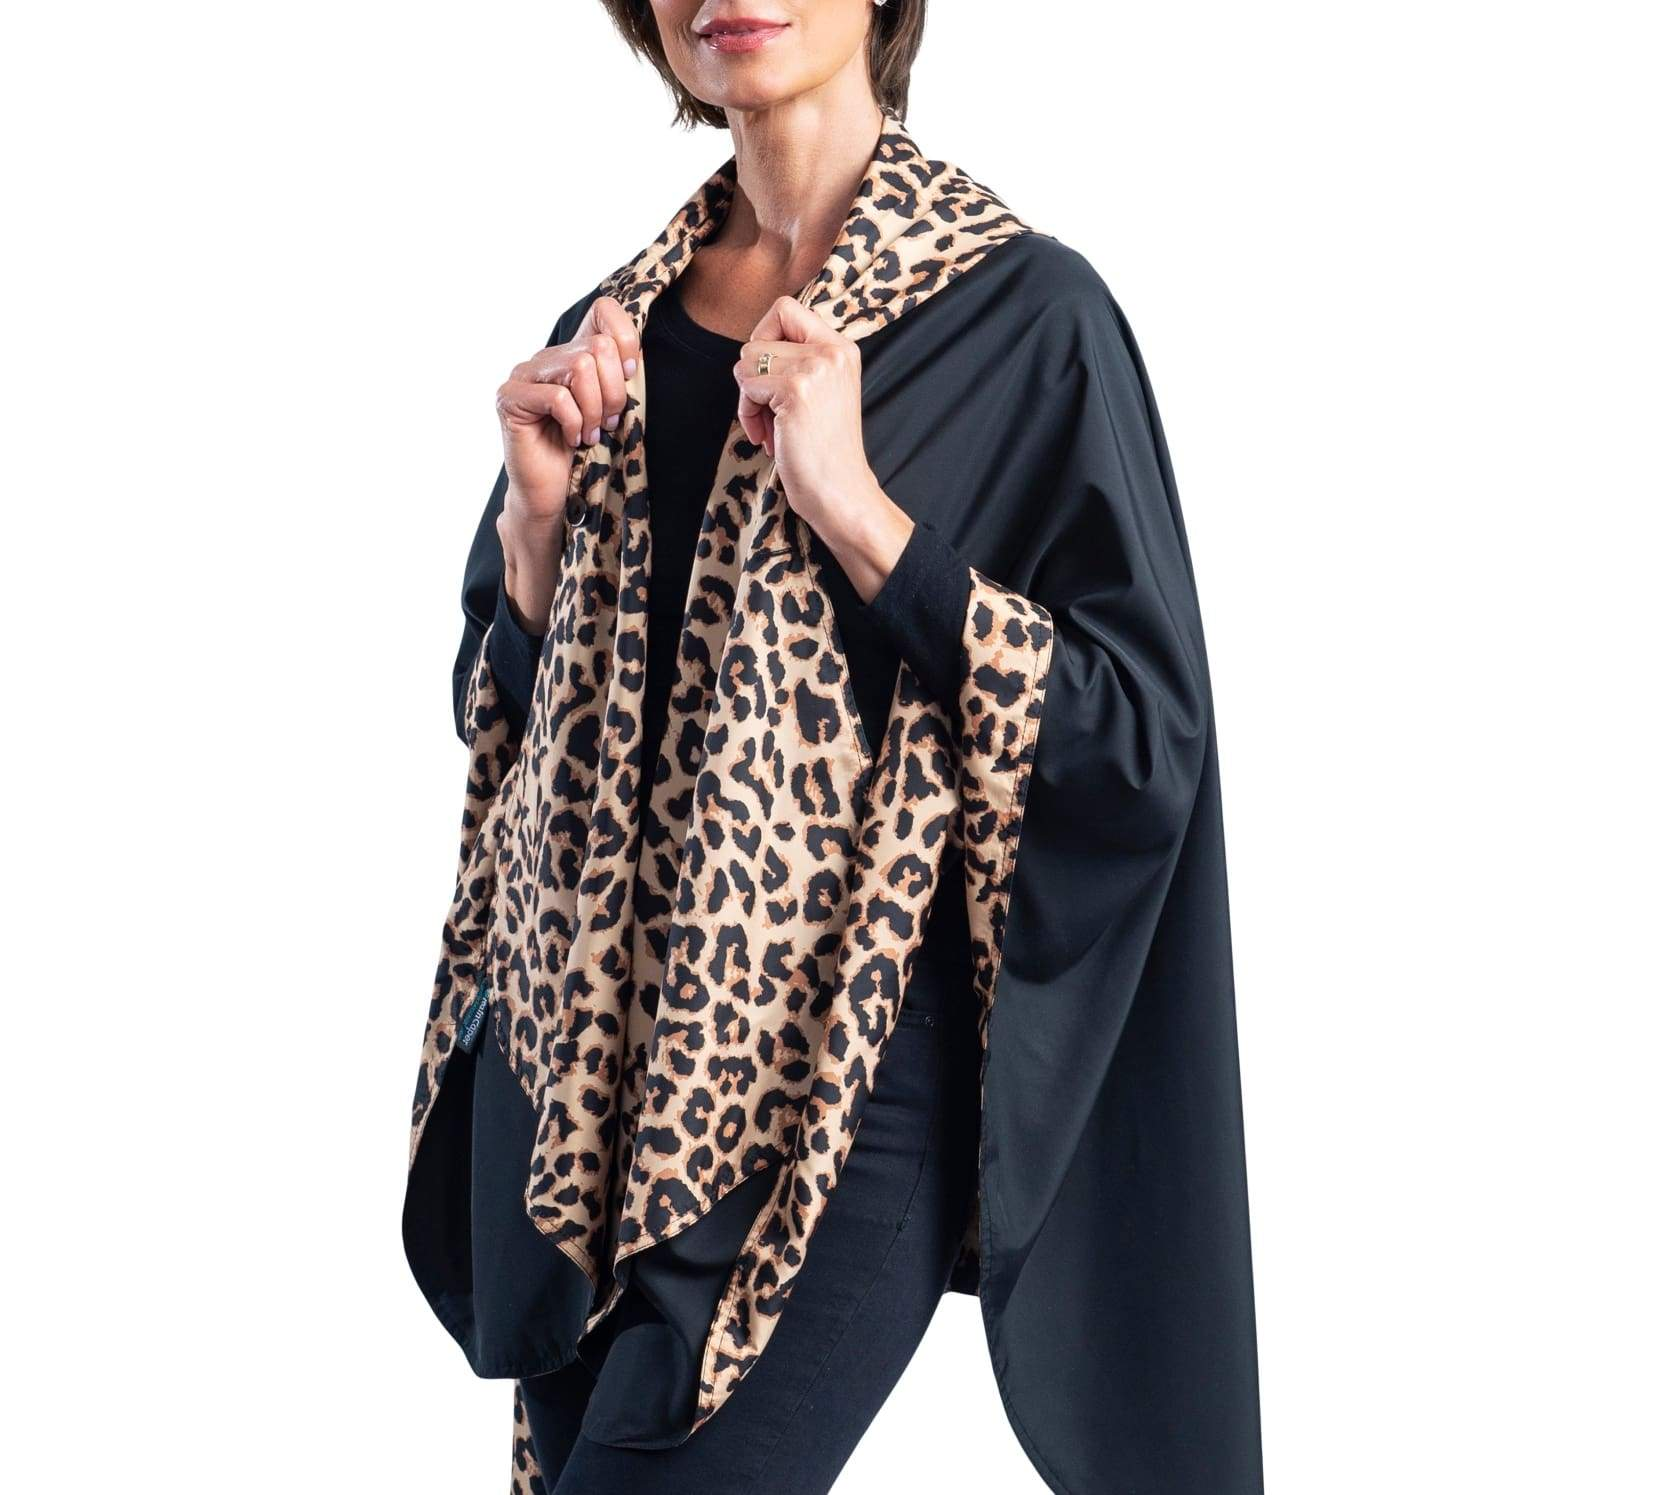 RainCaper Black & Leopard Animal Print Travel Cape